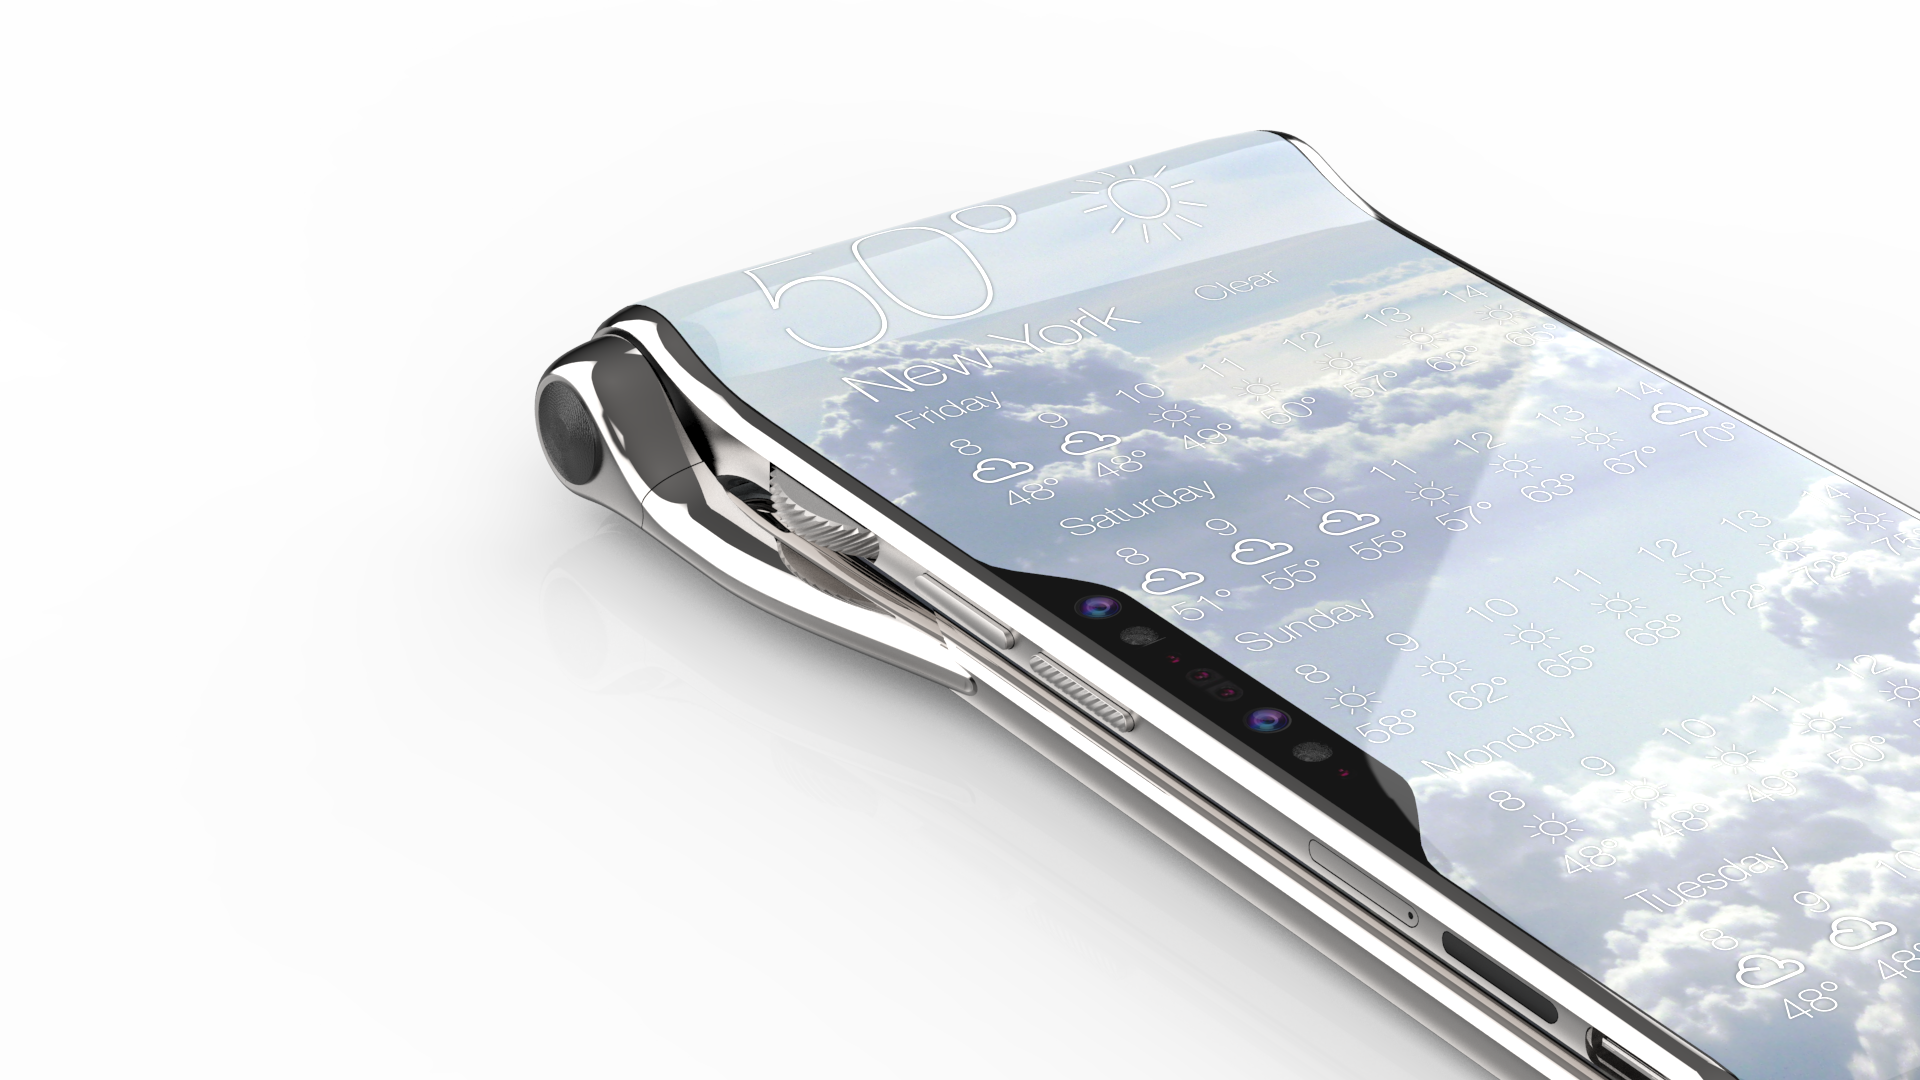 The Turing HubblePhone concept takes cues from Nokia's N93 ...